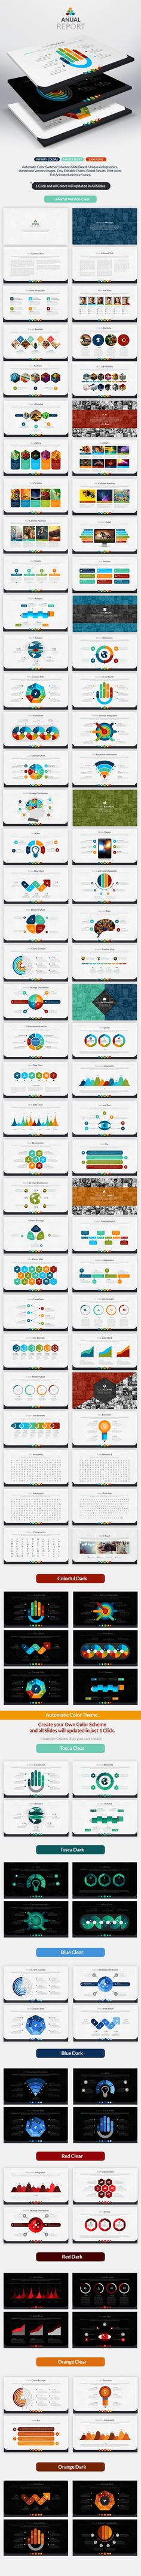 Anual Report | Powerpoint Presentation Template #powerpoint #powerpointtemplate #presentation Download: http://graphicriver.net/item/anual-report-powerpoint-presentation/9780169?ref=ksioks